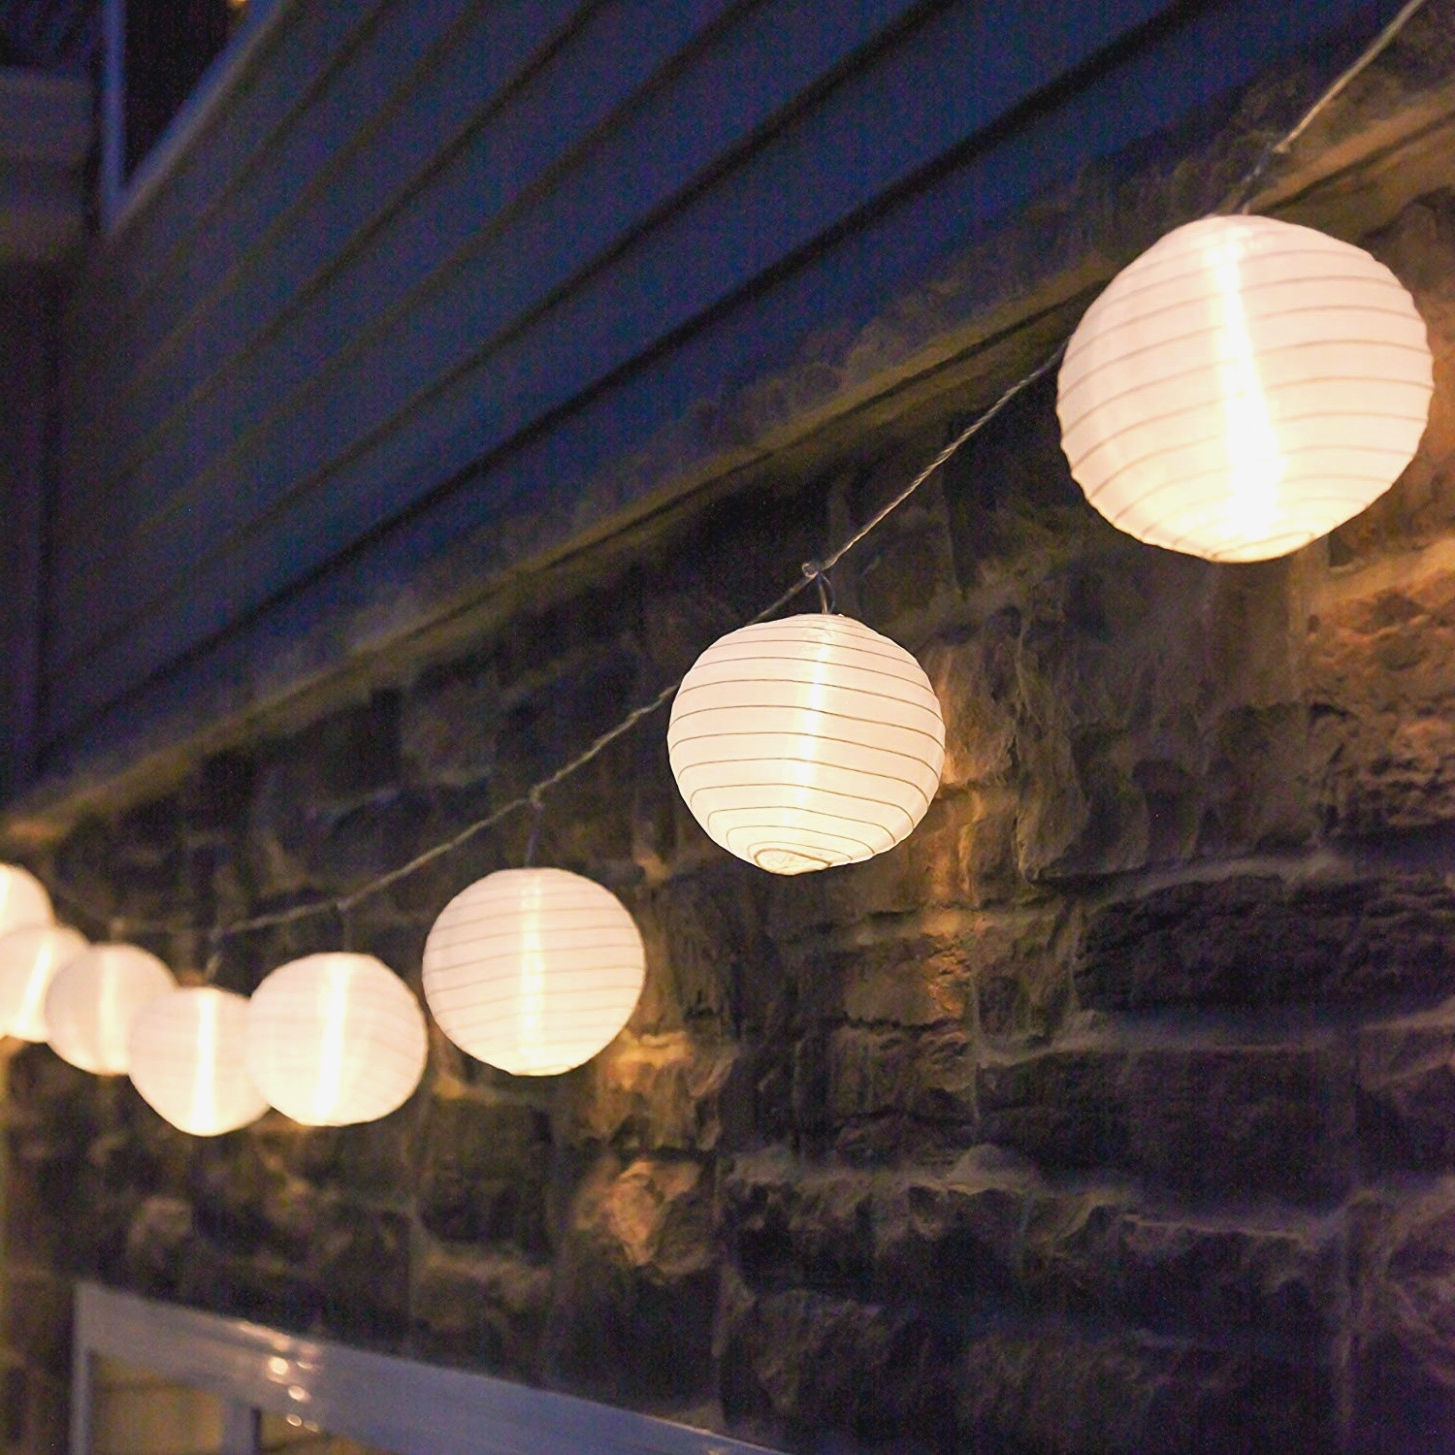 Trendy Amazon: 40 Ft. White Outdoor String Light, 40 Mini Lanterns, 40 With Regard To Outdoor Chinese Lanterns For Patio (Gallery 18 of 20)